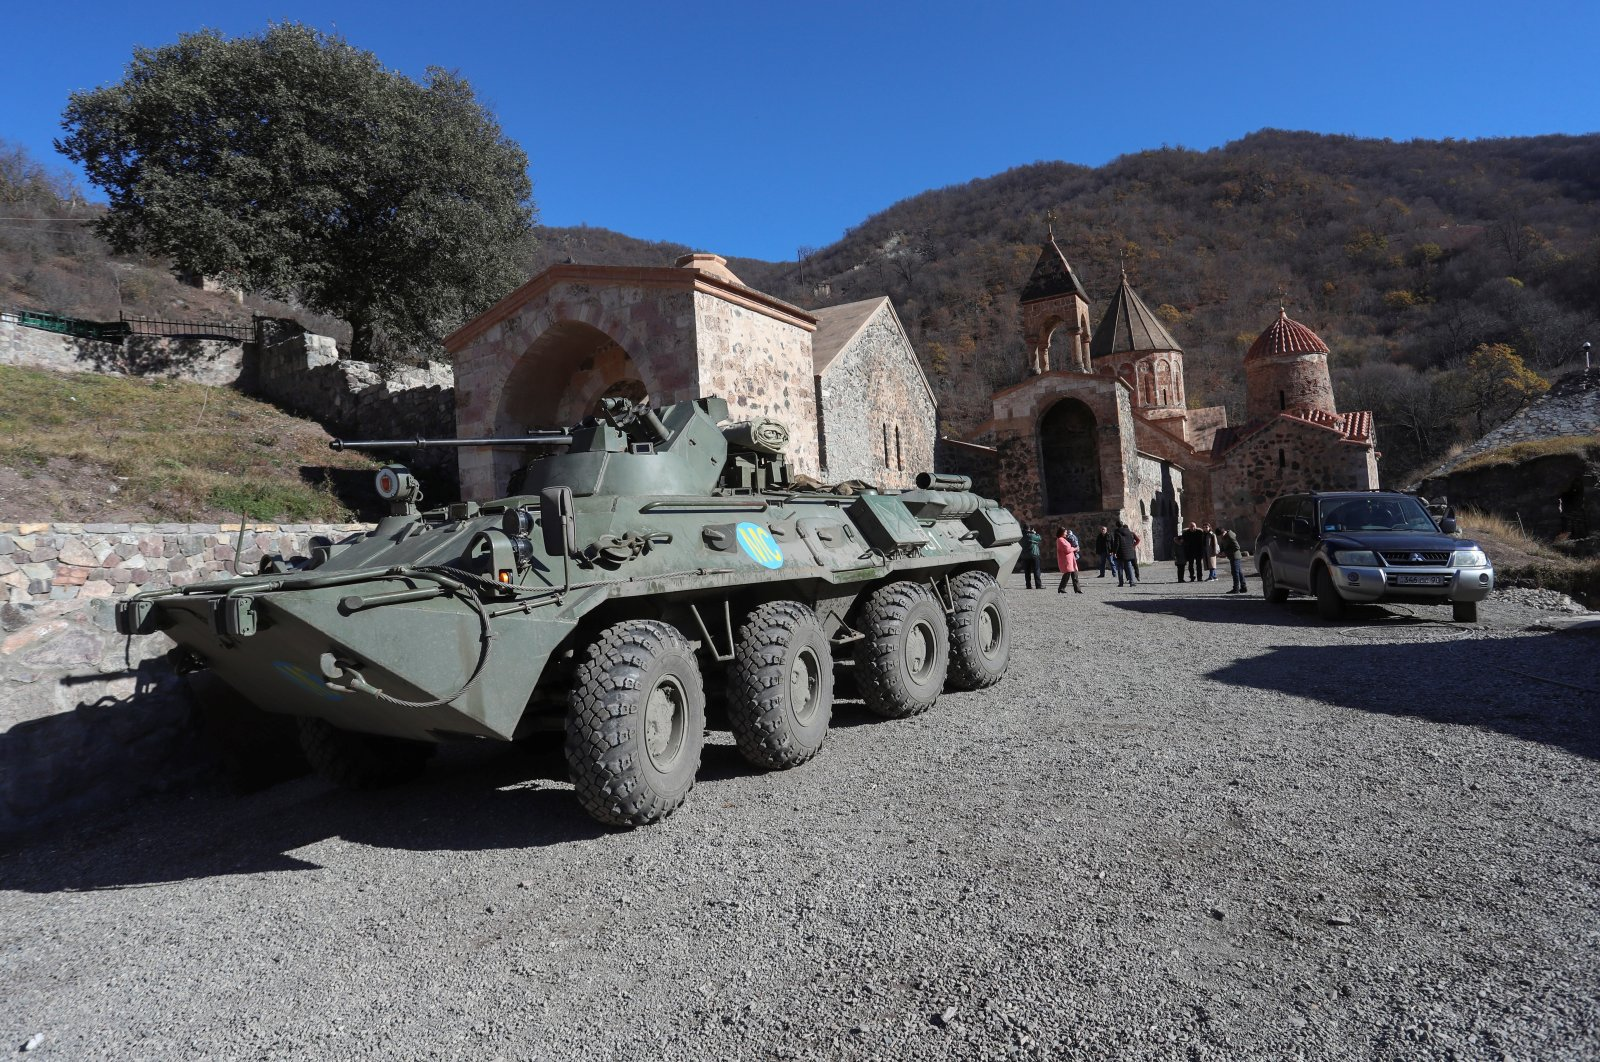 A view shows an armored personnel carrier of the Russian peacekeeping forces near Dadivank Monastery in the region of Nagorno-Karabakh, Nov. 24, 2020. (Hayk Baghdasaryan/Photolure via Reuters)